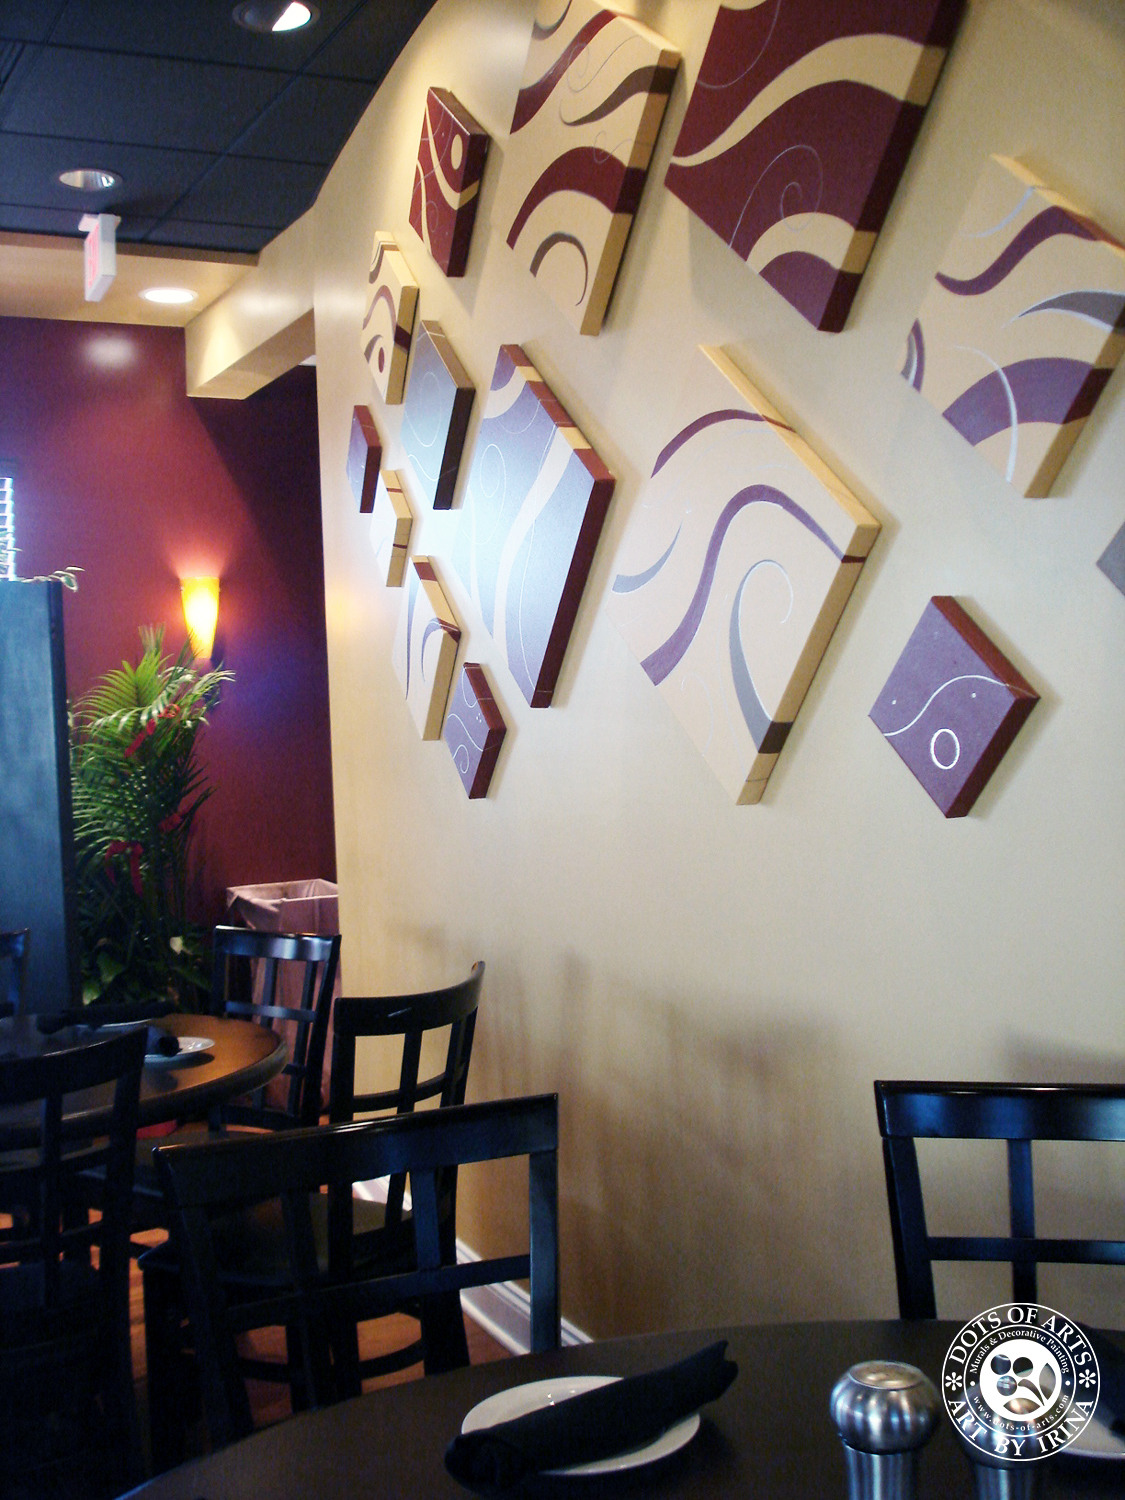 murals-nj-commercial-wall-decor-canvases-decorative-painting-restaurant-custom-color-dots-of-arts-06.jpg